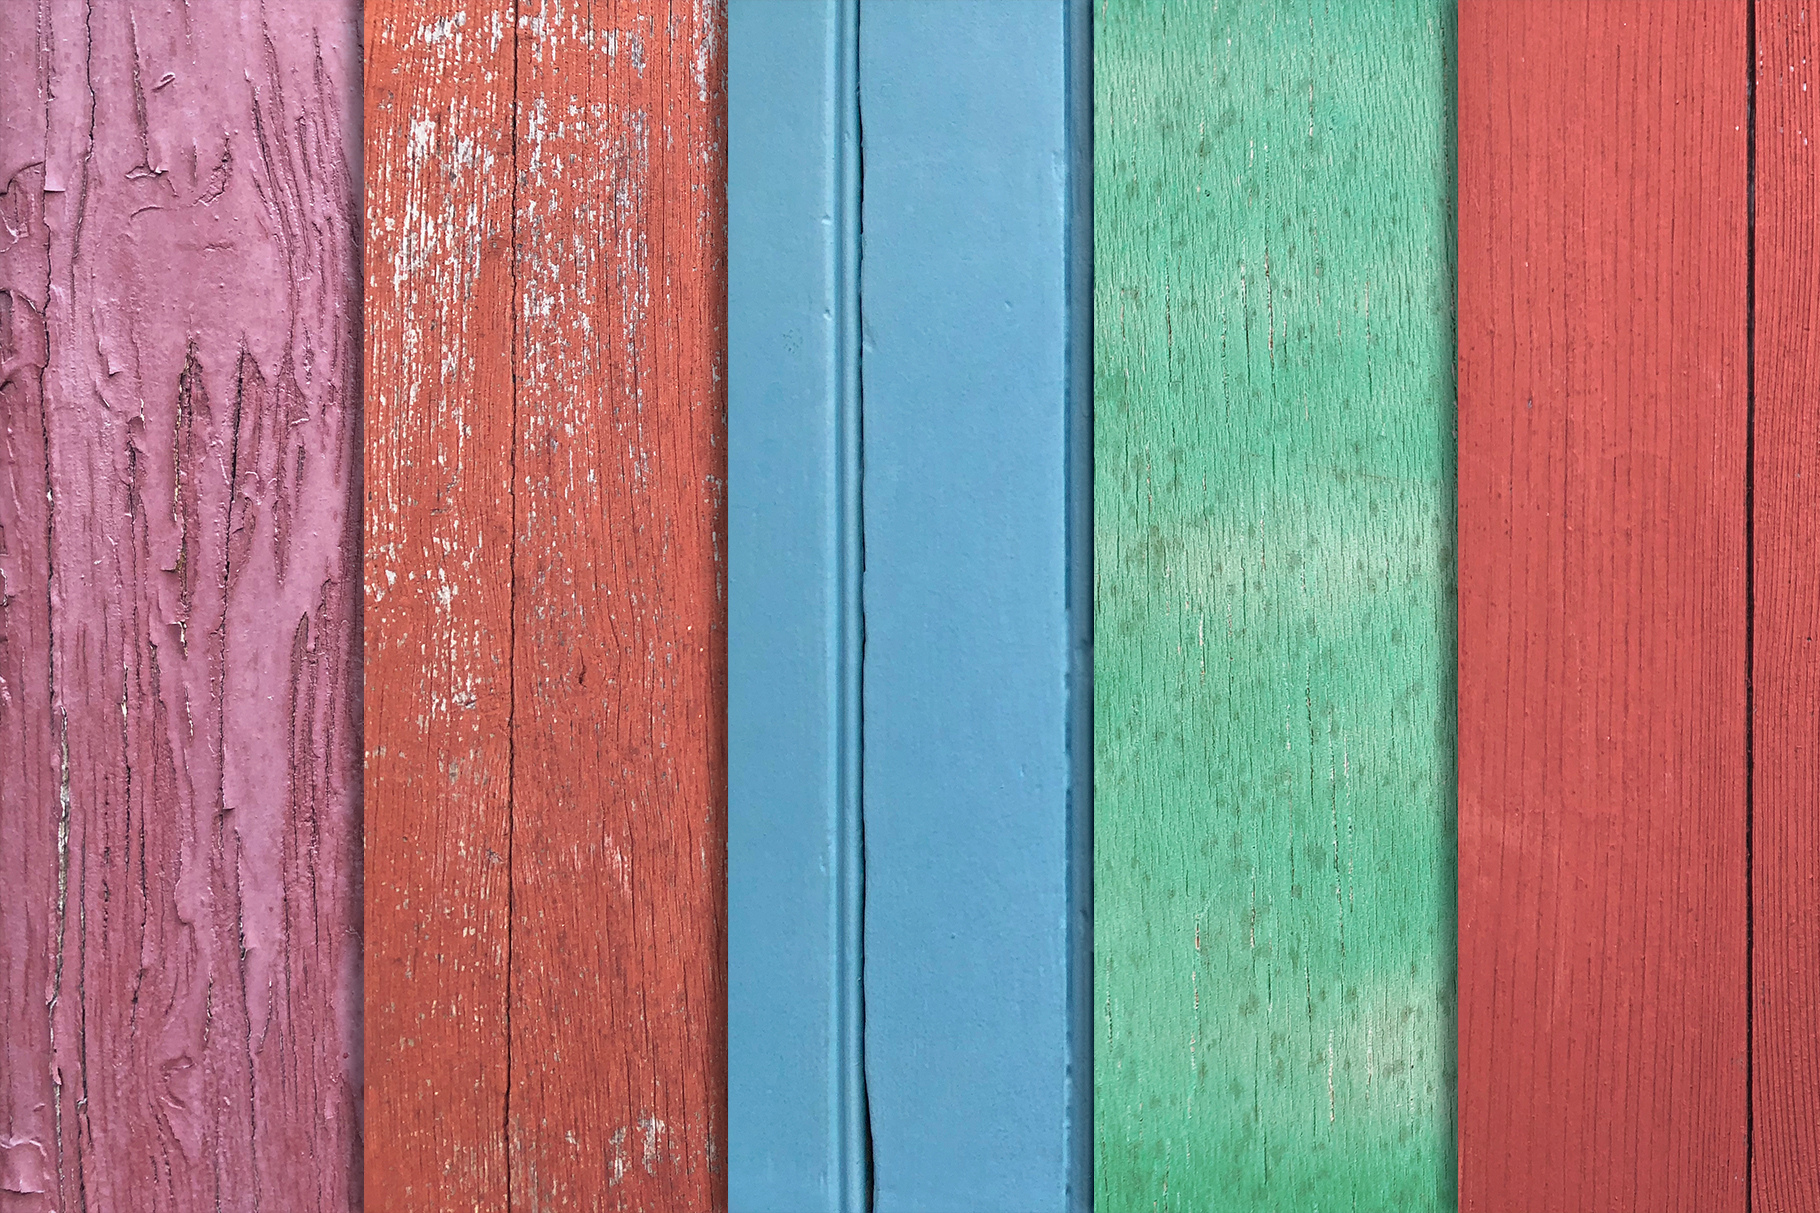 Color Wood Textures x10 example image 2